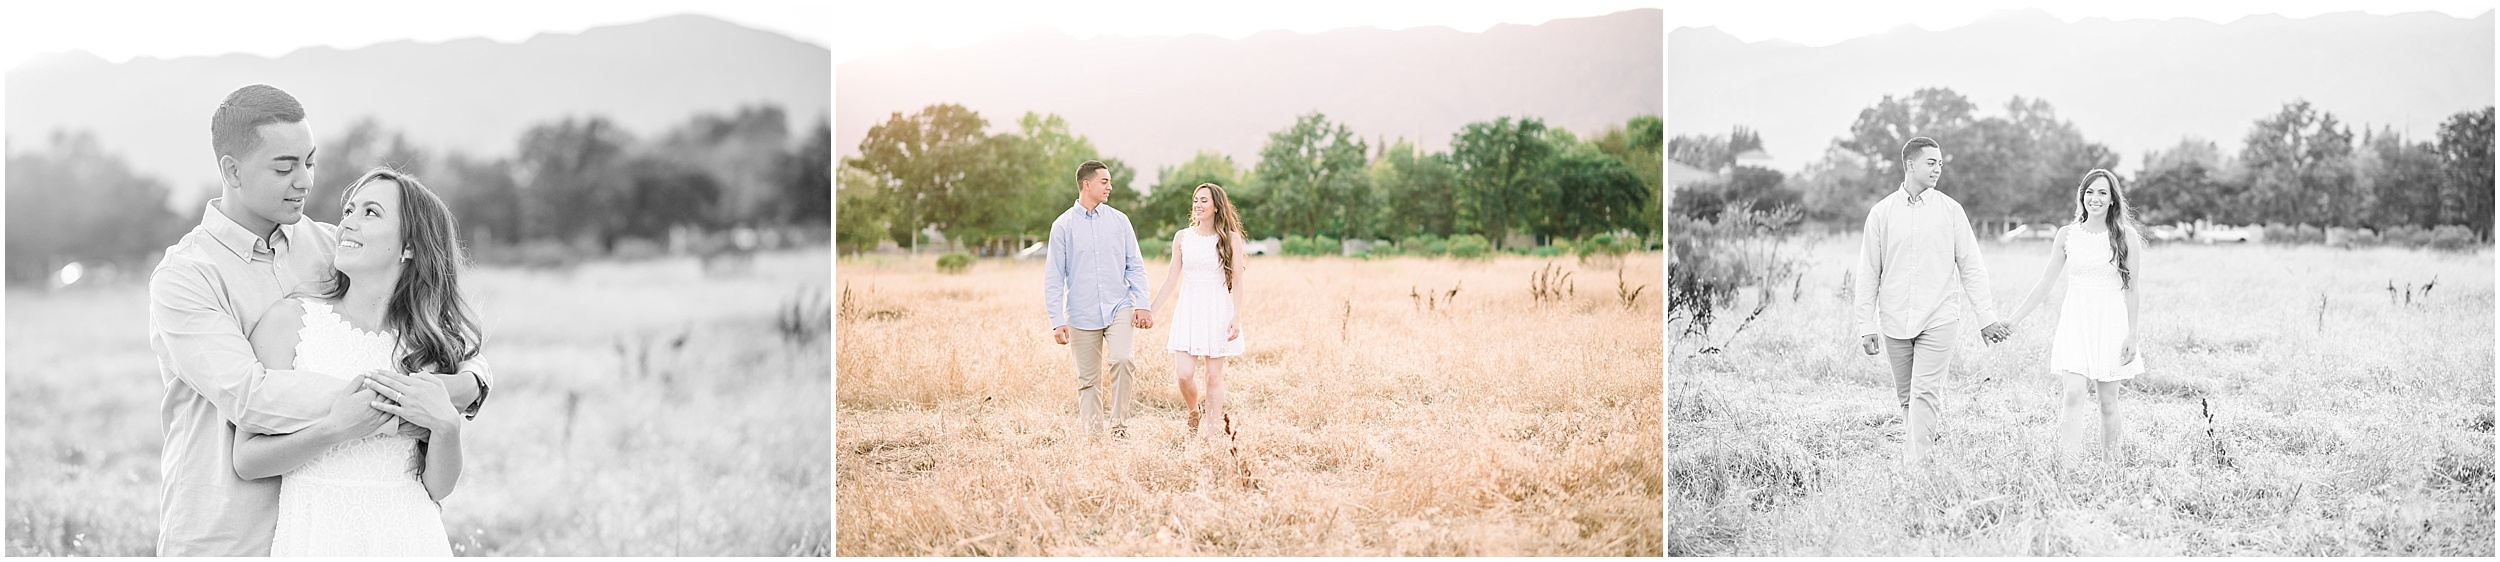 Valeria-Gonzalez-Photography-Wedding-and-Portrait-Photographer-Richmond-Virginia-Engagement-Session-in-Ojai-California_0025.jpg